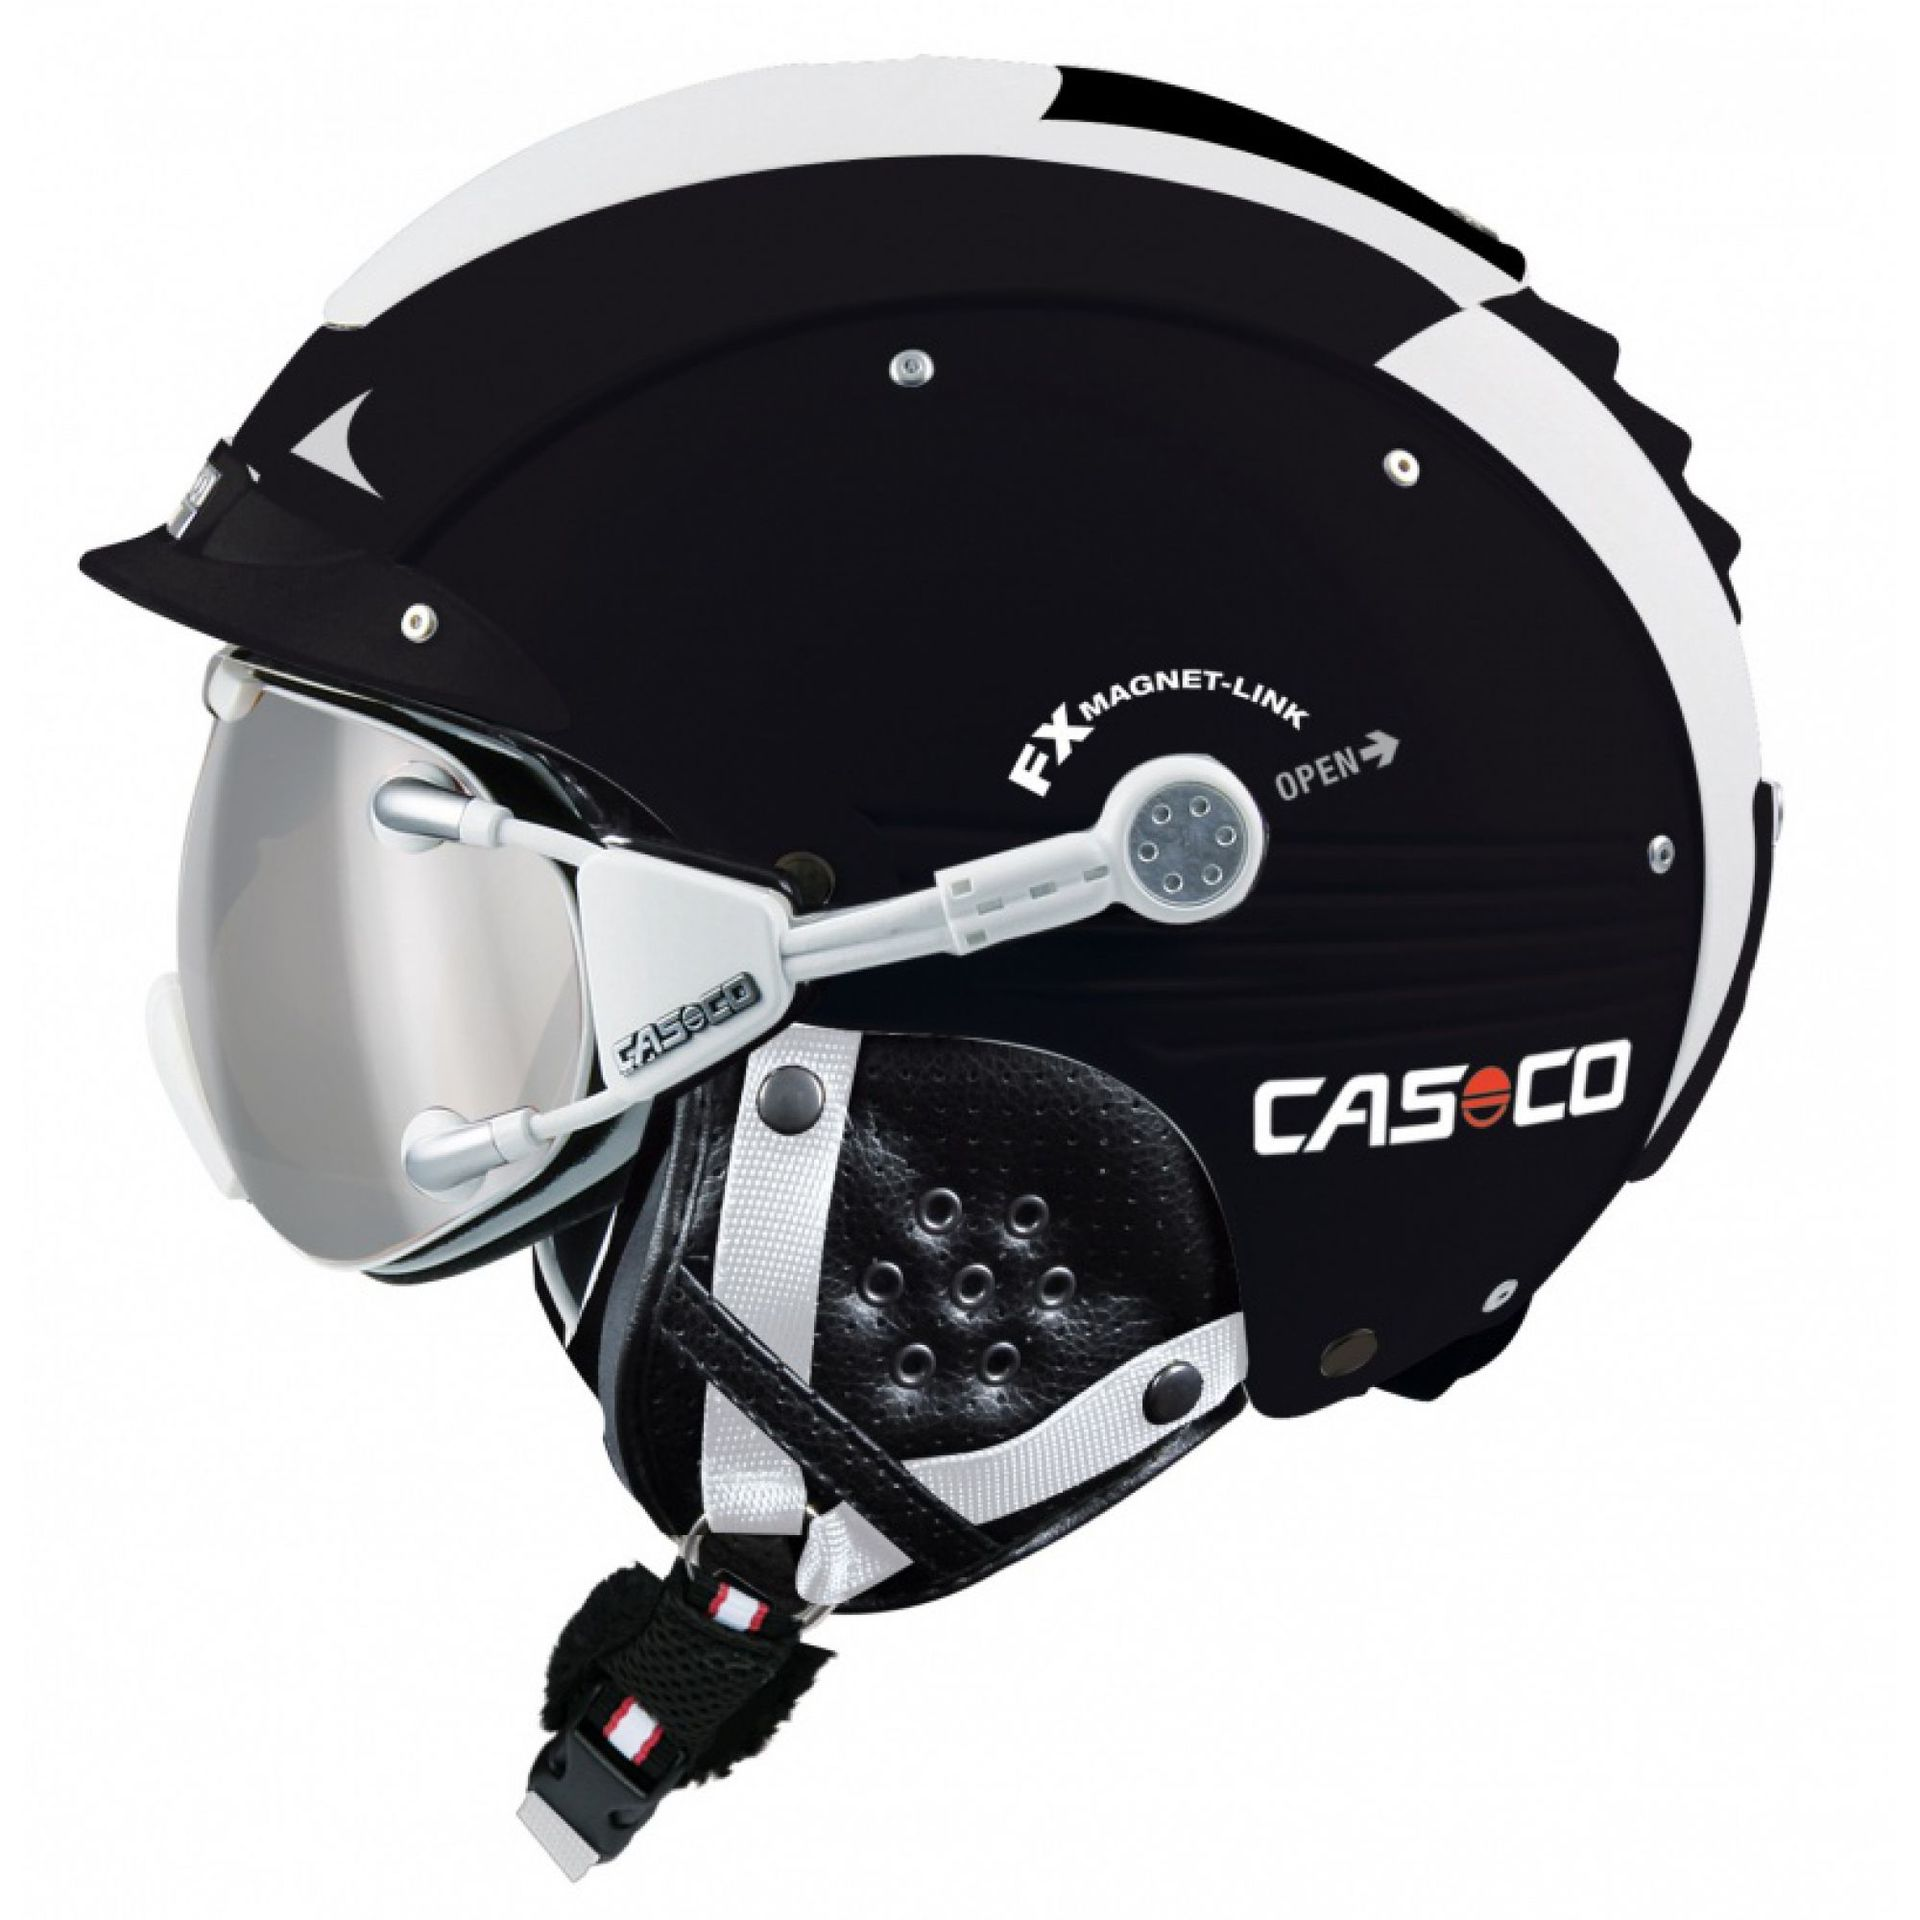 KASK CASCO SP-5 3202 1